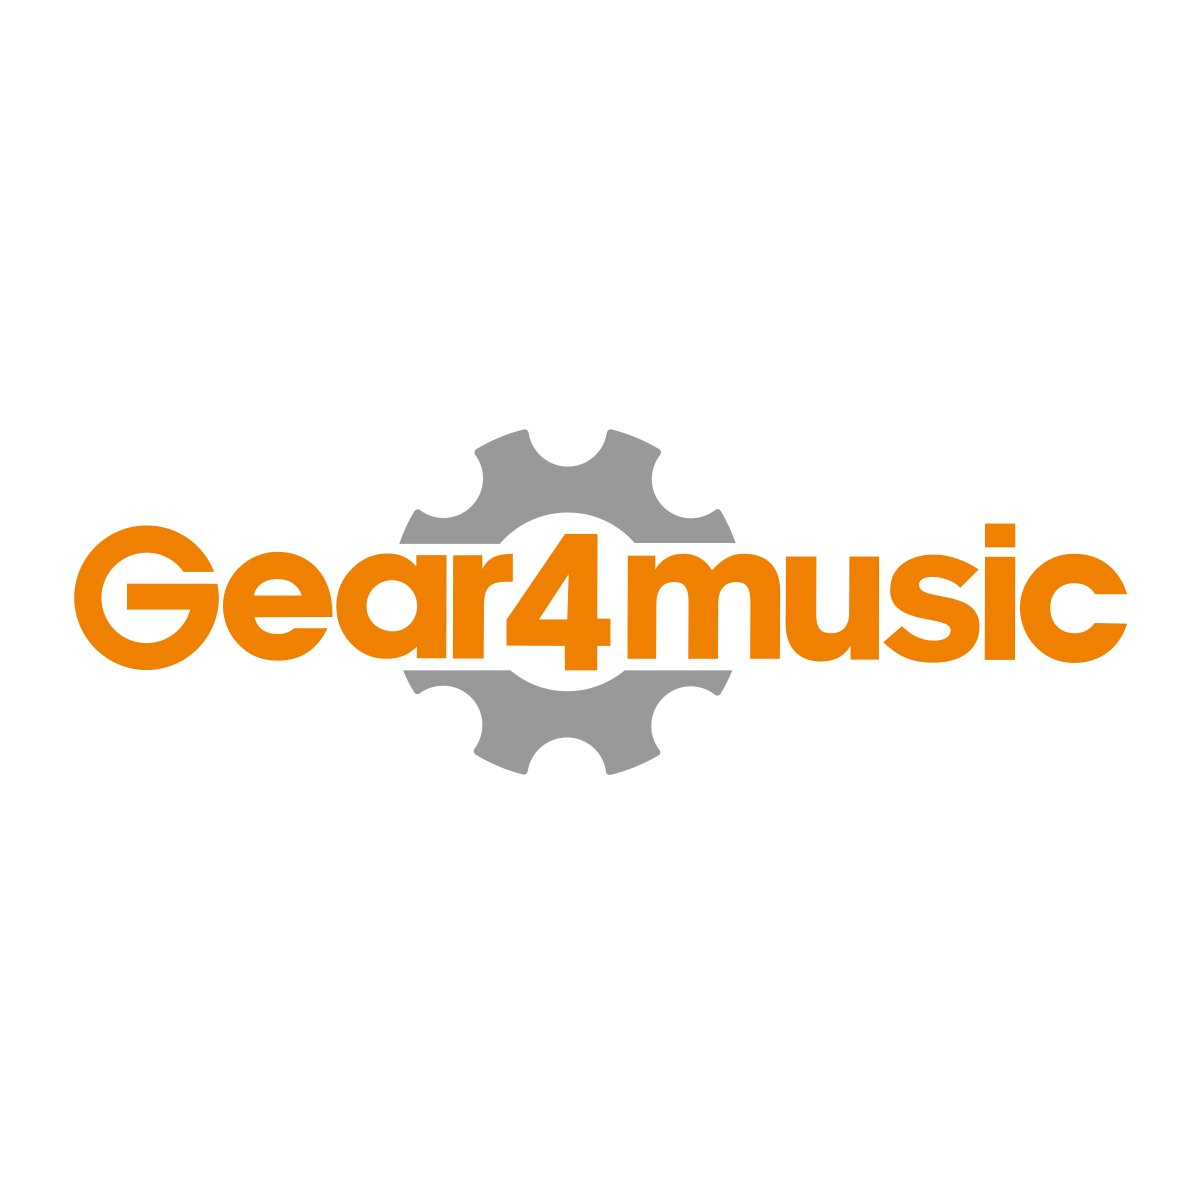 MK-2000 54-key Portable Keyboard by Gear4music - Starter Pack